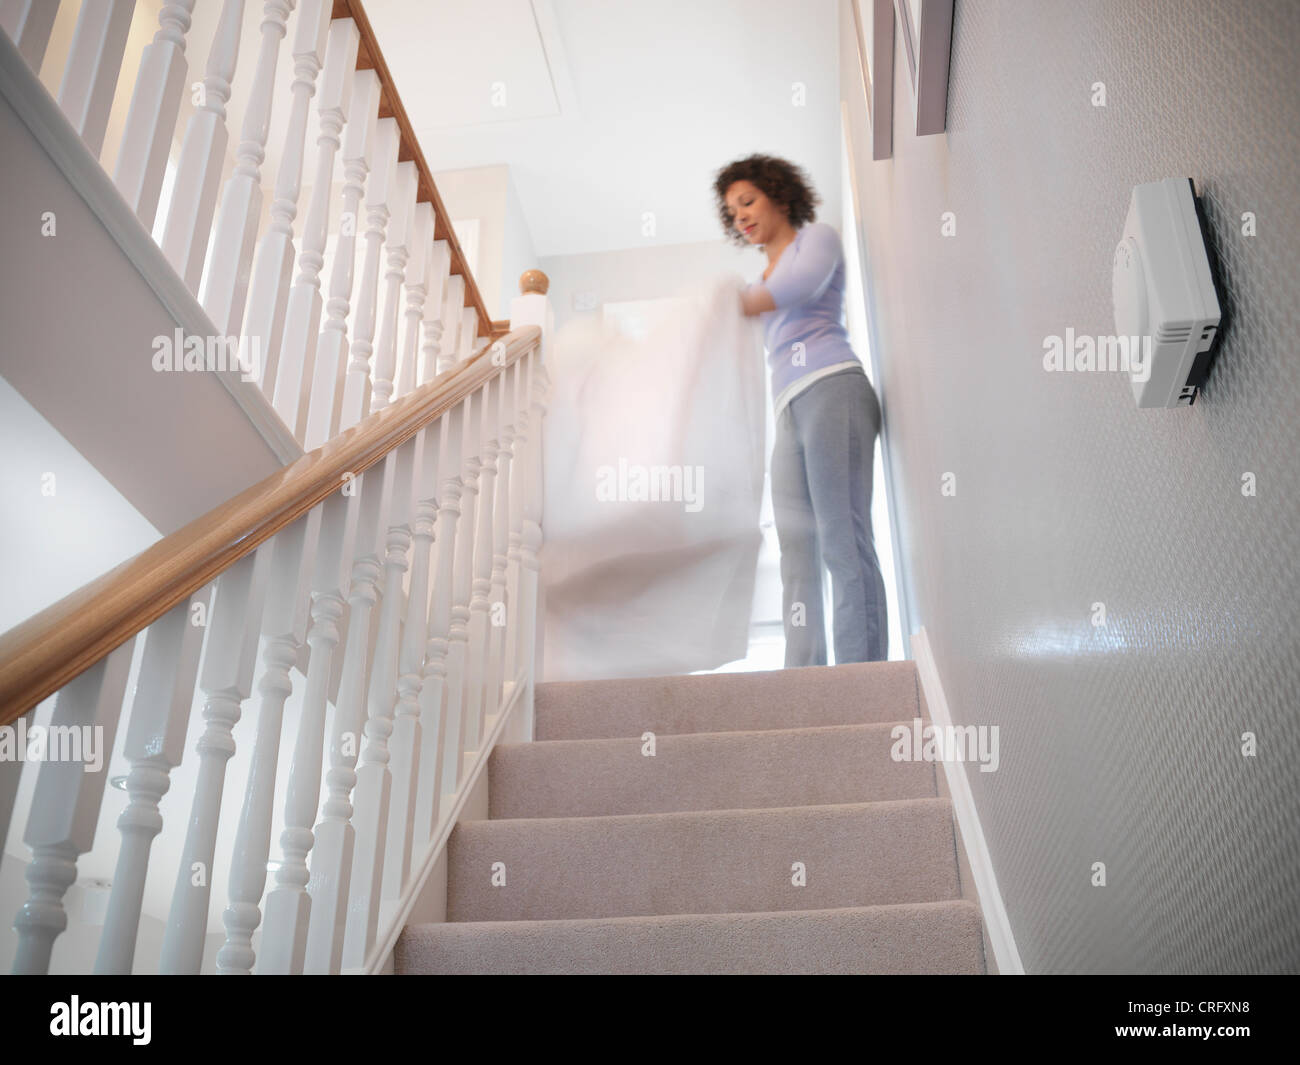 Woman shaking out sheets on staircase - Stock Image